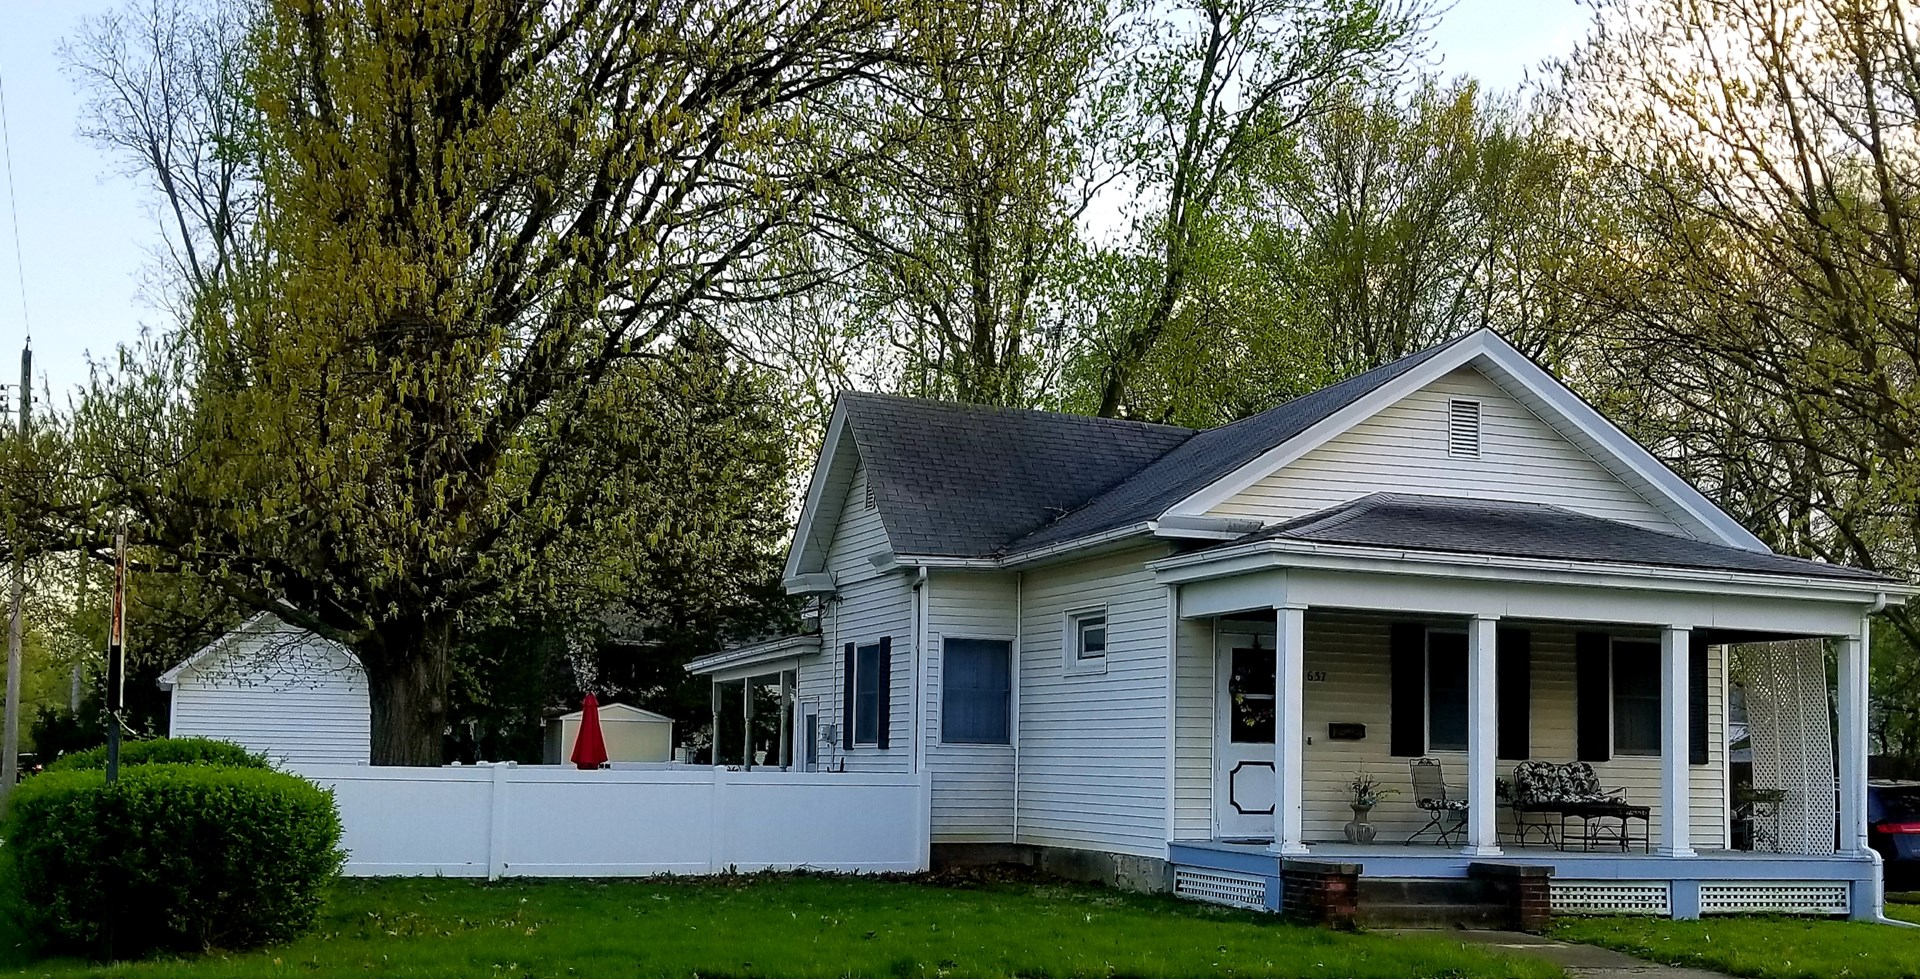 Bungalow in Carlinville Recently Updated 3 Bedrooms 1 Bath